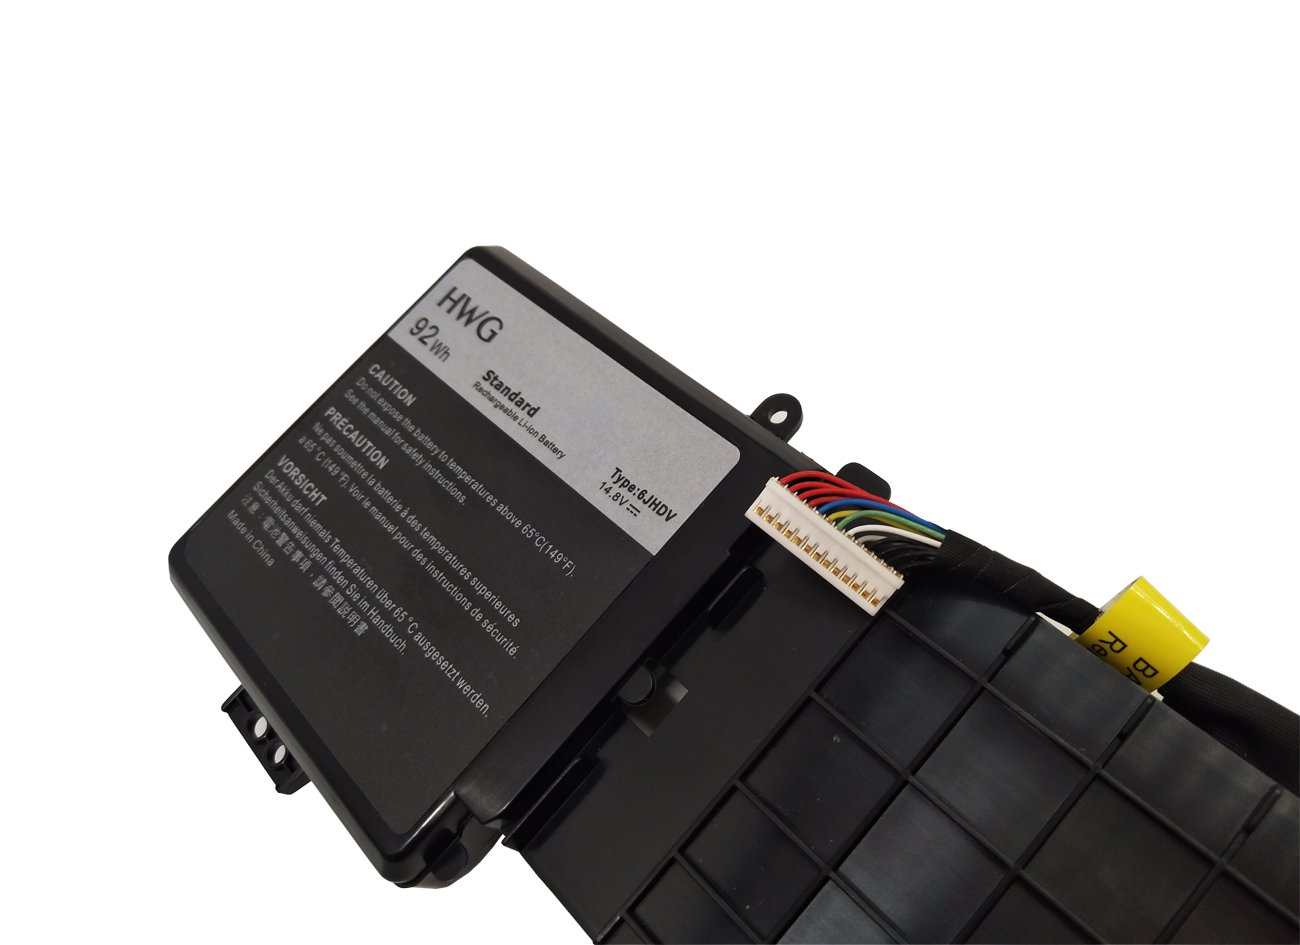 HWG 6JHDV Battery Compatible Dell Alienware 17 R2 5046J P43F Series, Fits P/N 6JHDV (14.8V 92WH) by HWG (Image #3)